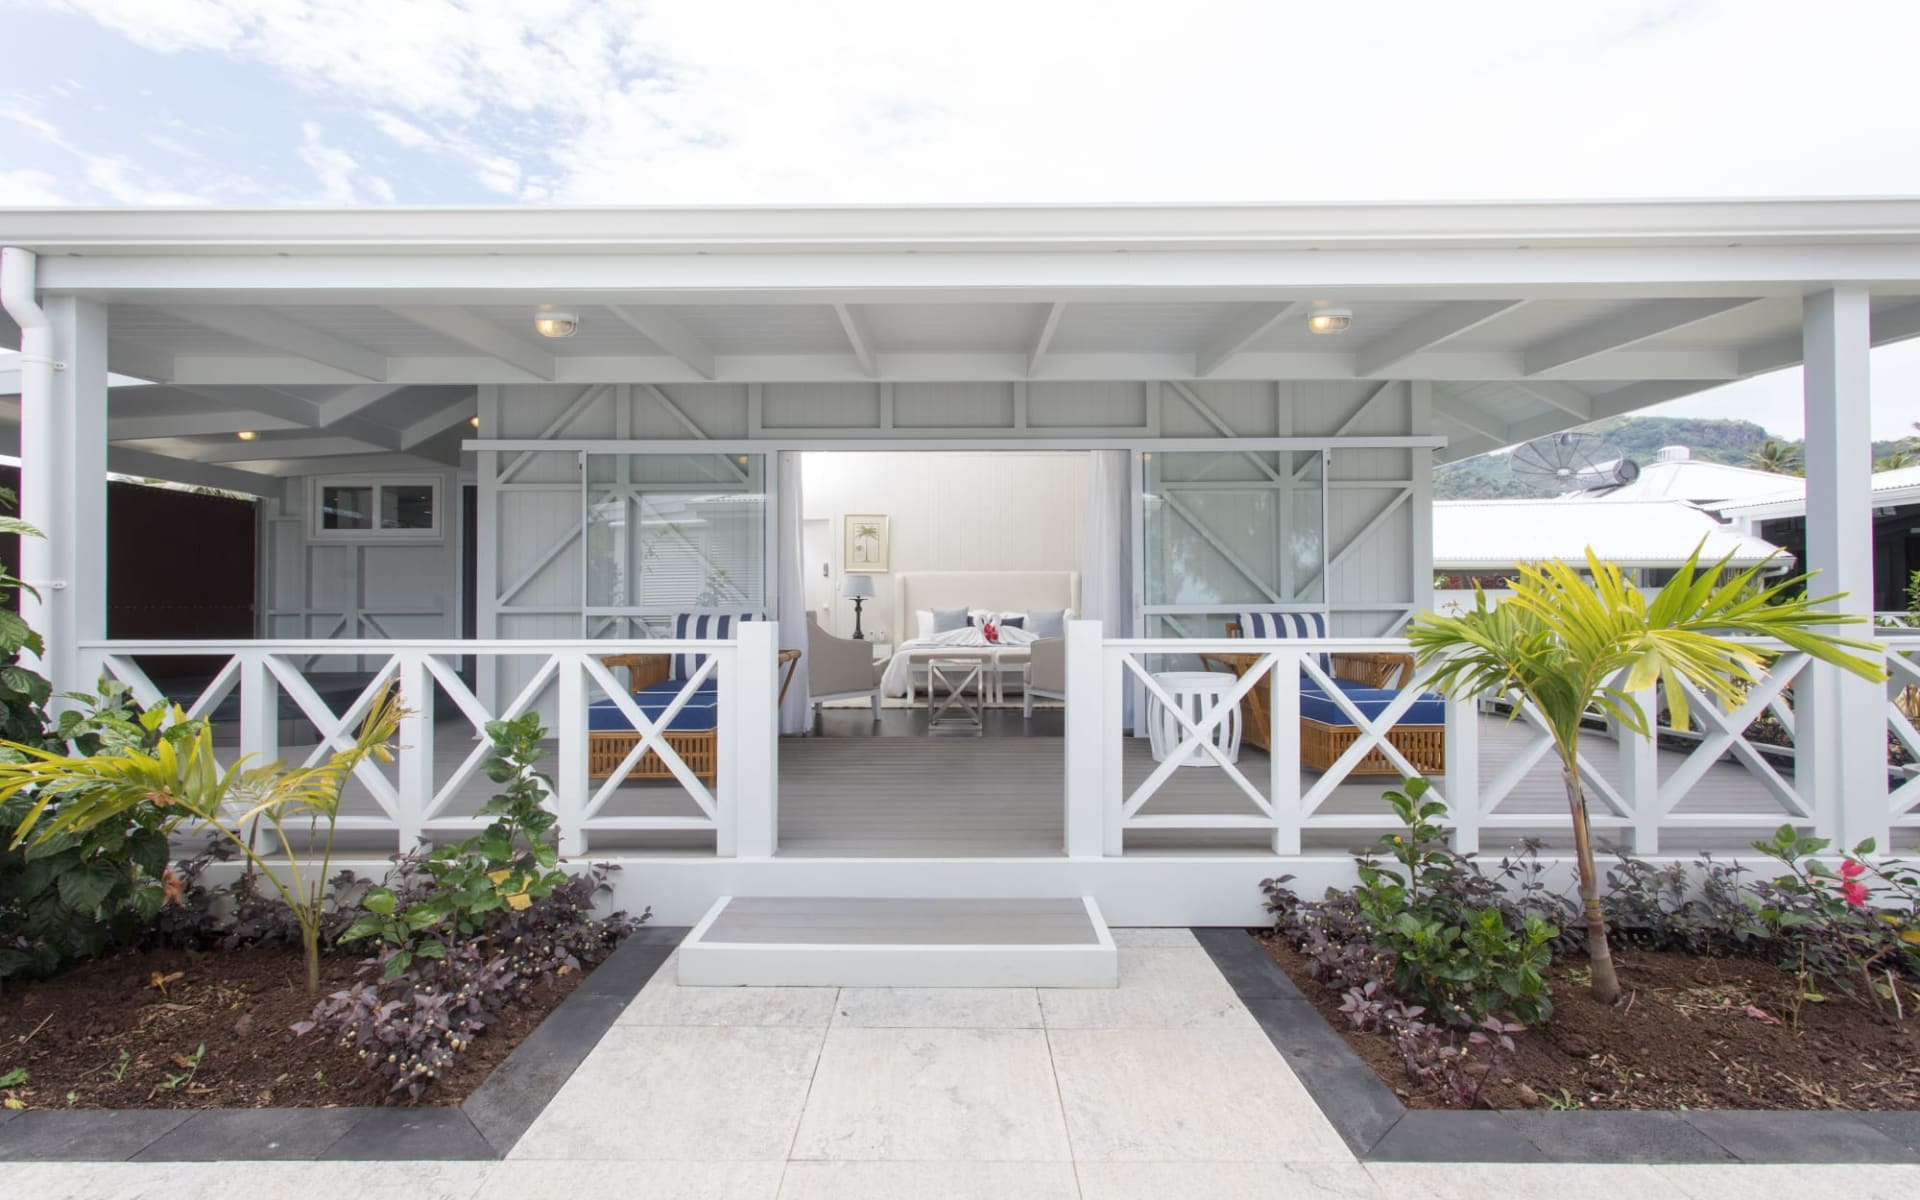 Waterfoot House in Rarotonga:  Waterfoot-House-Master-King-Suite-exterior